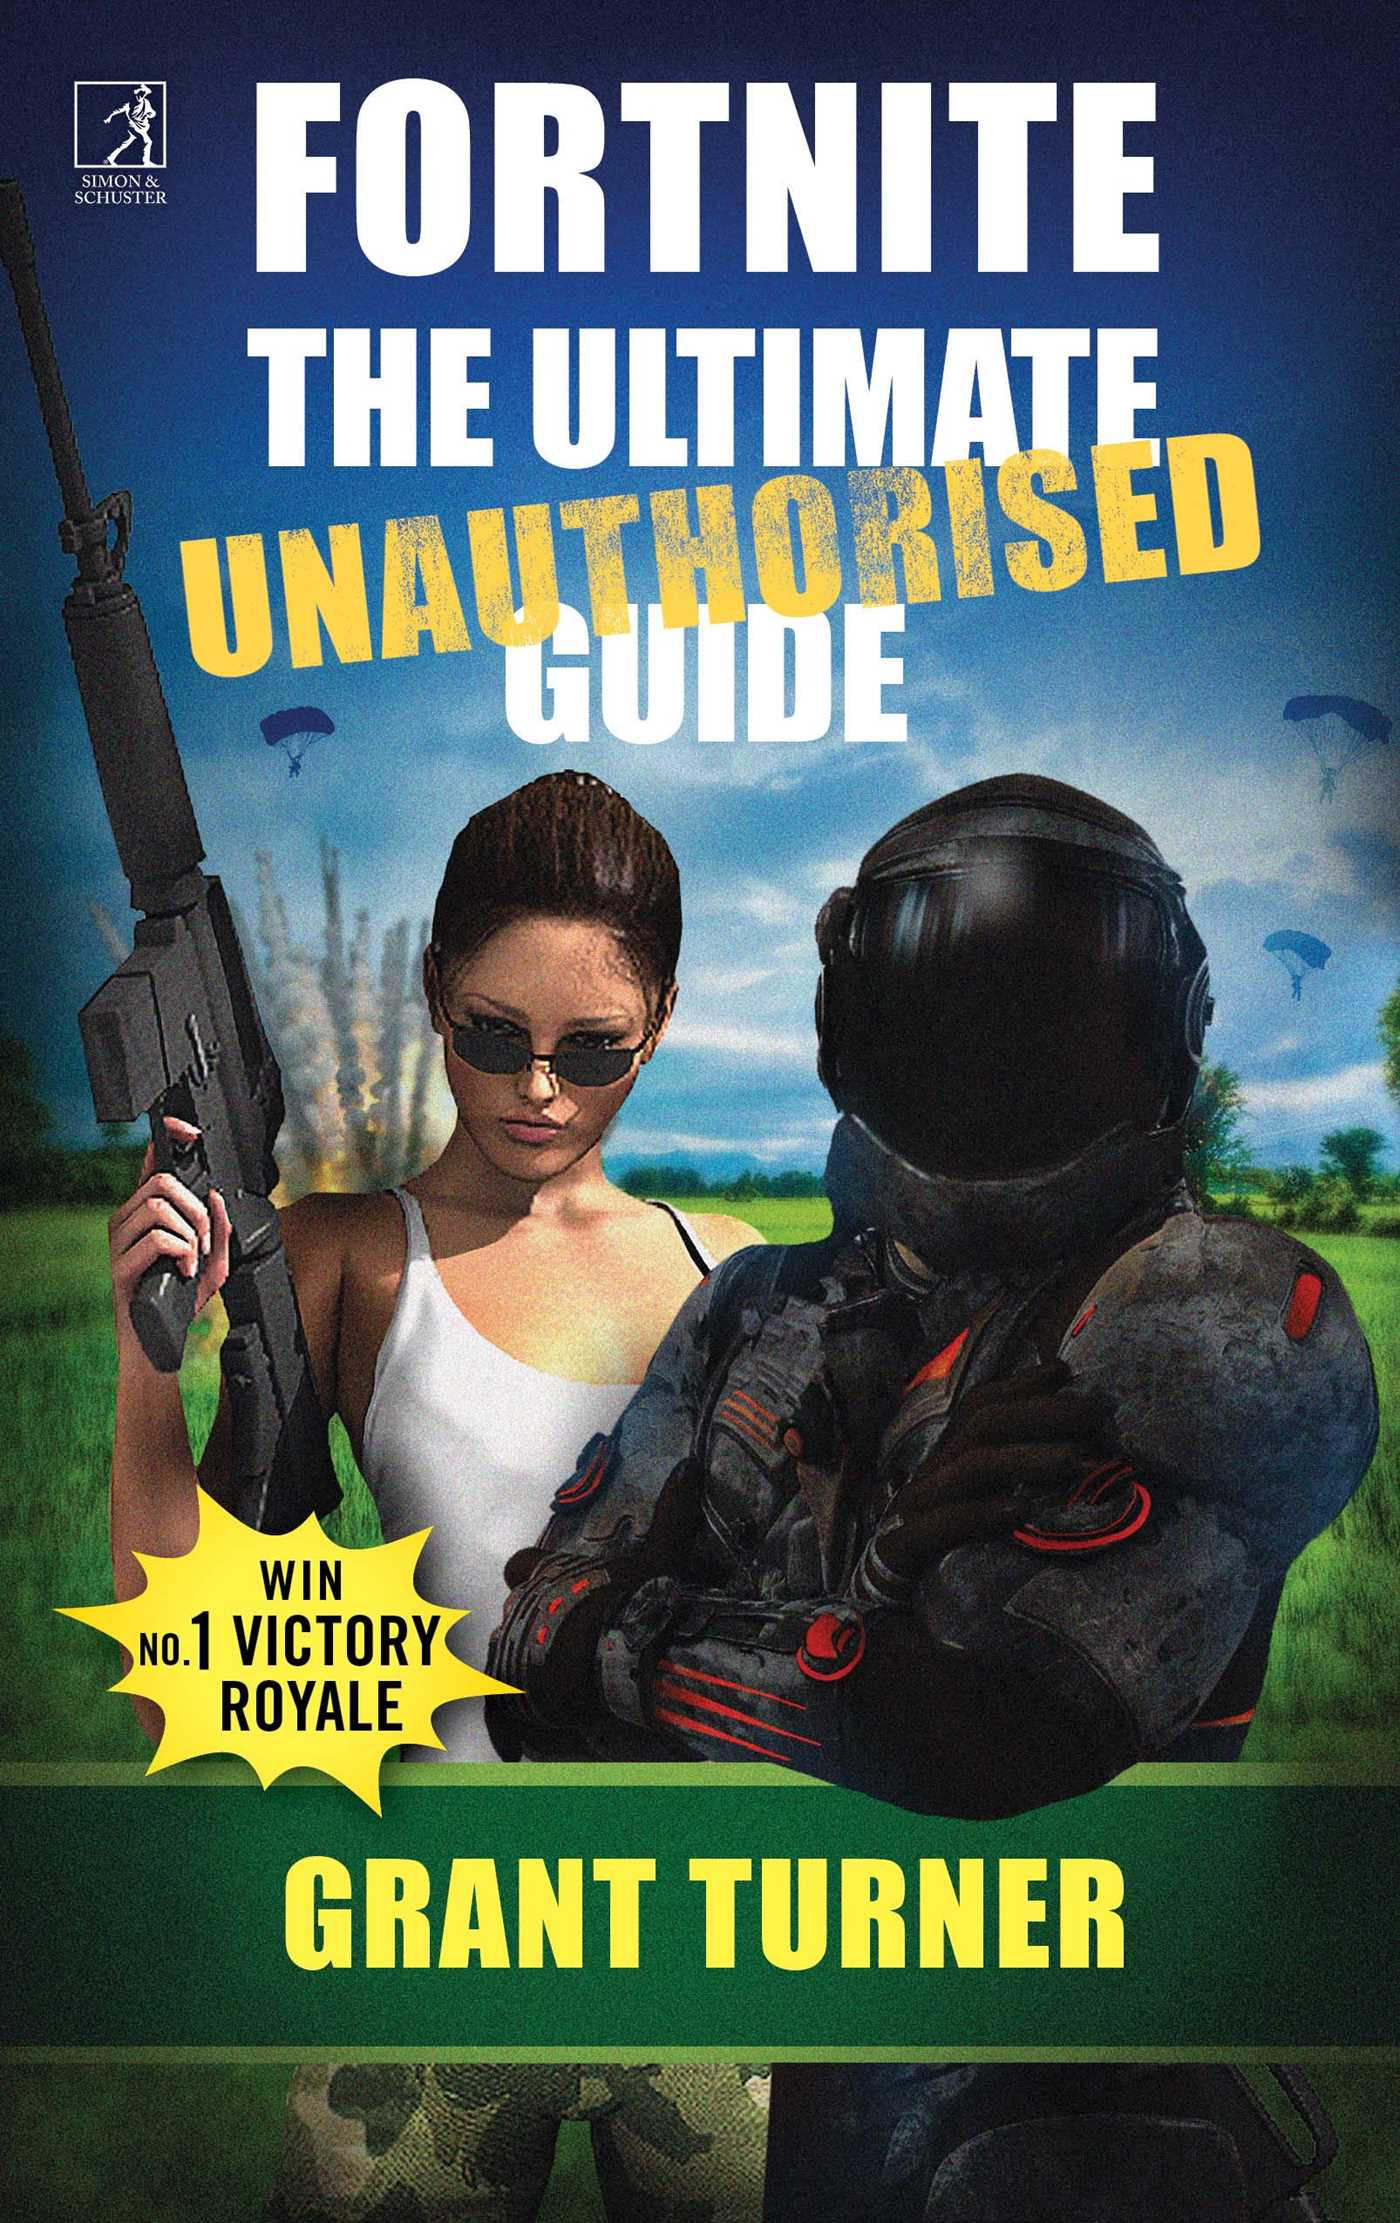 Fortnite the ultimate unauthorised guide 9781471178214 hr